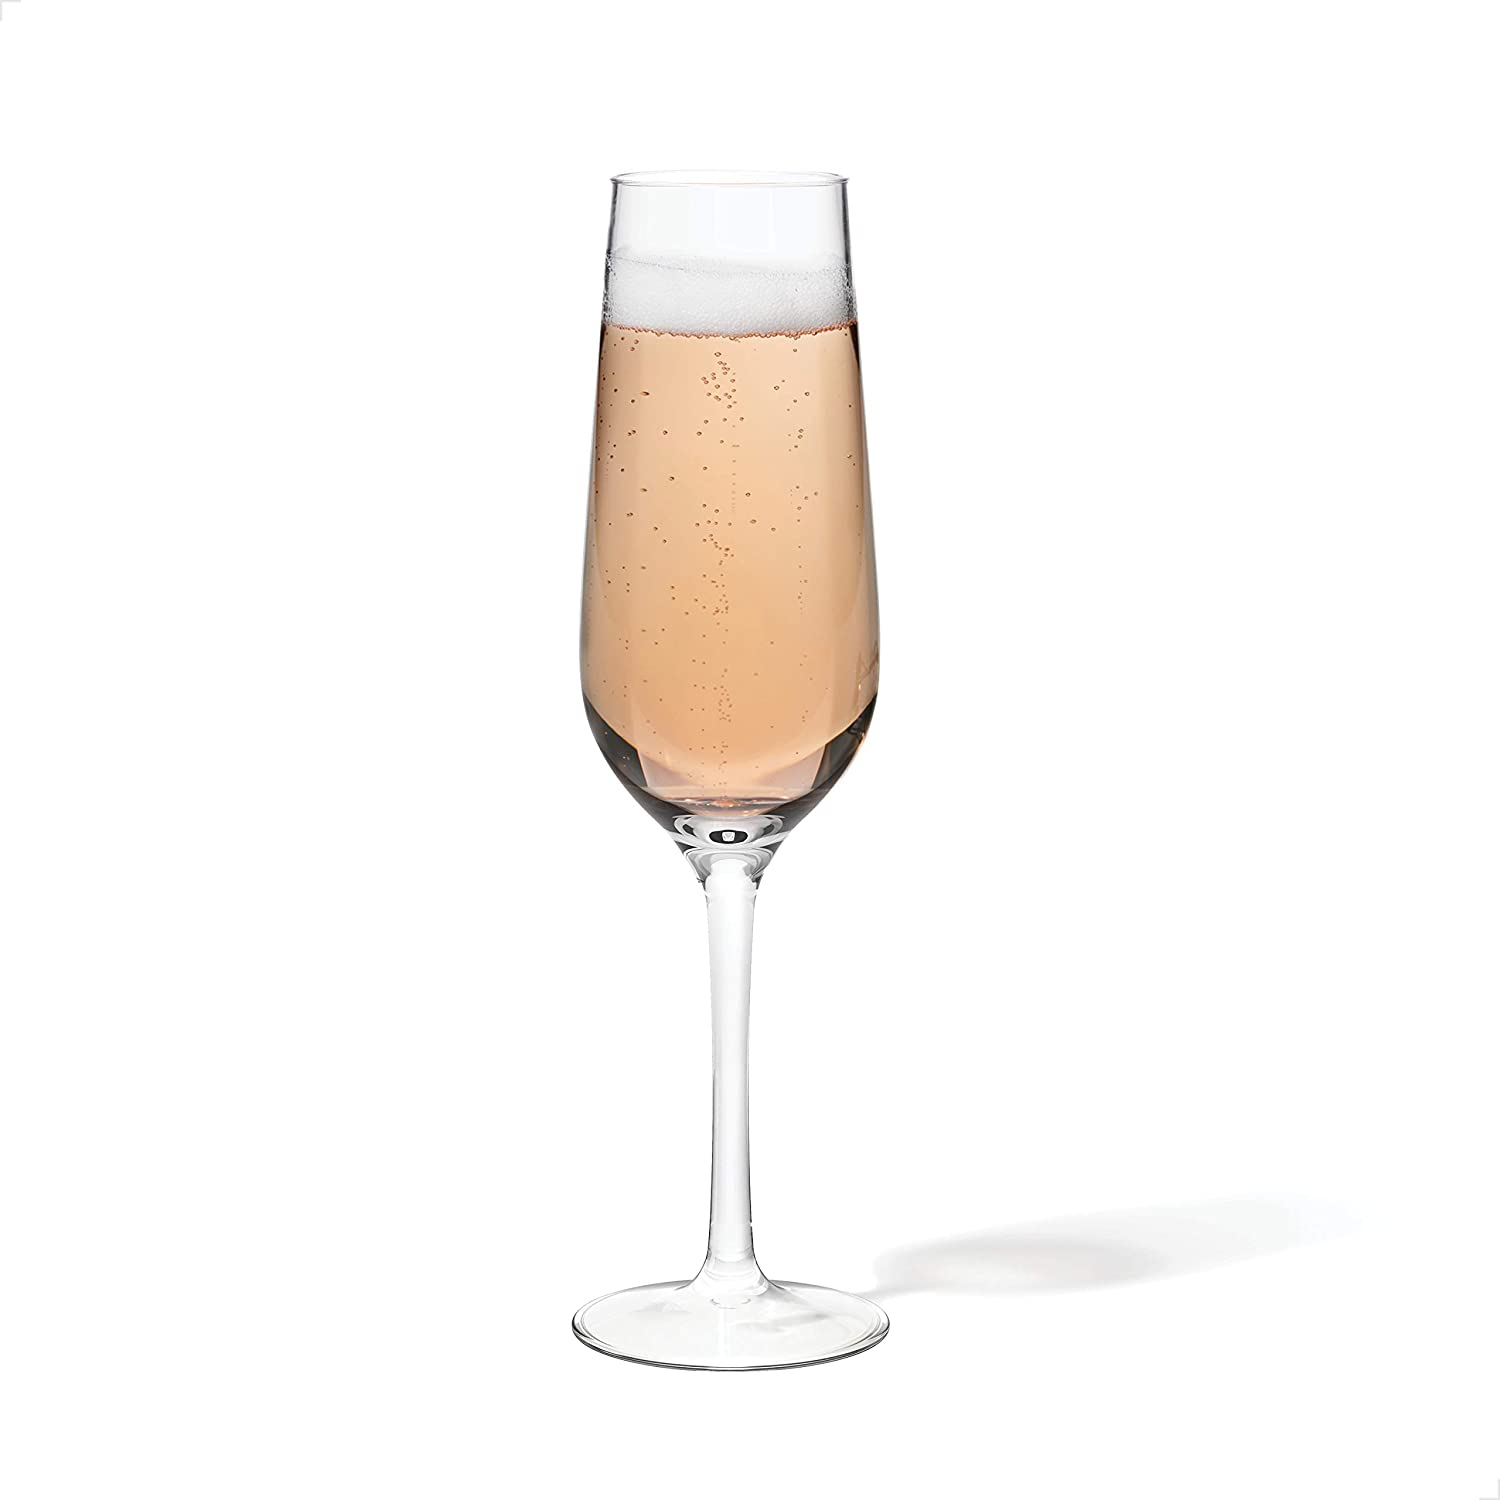 TOSSWARE 9oz Champagne Glass SET OF 4, Tritan Dishwasher Safe & Heat Resistant Unbreakable Plastic Flutes